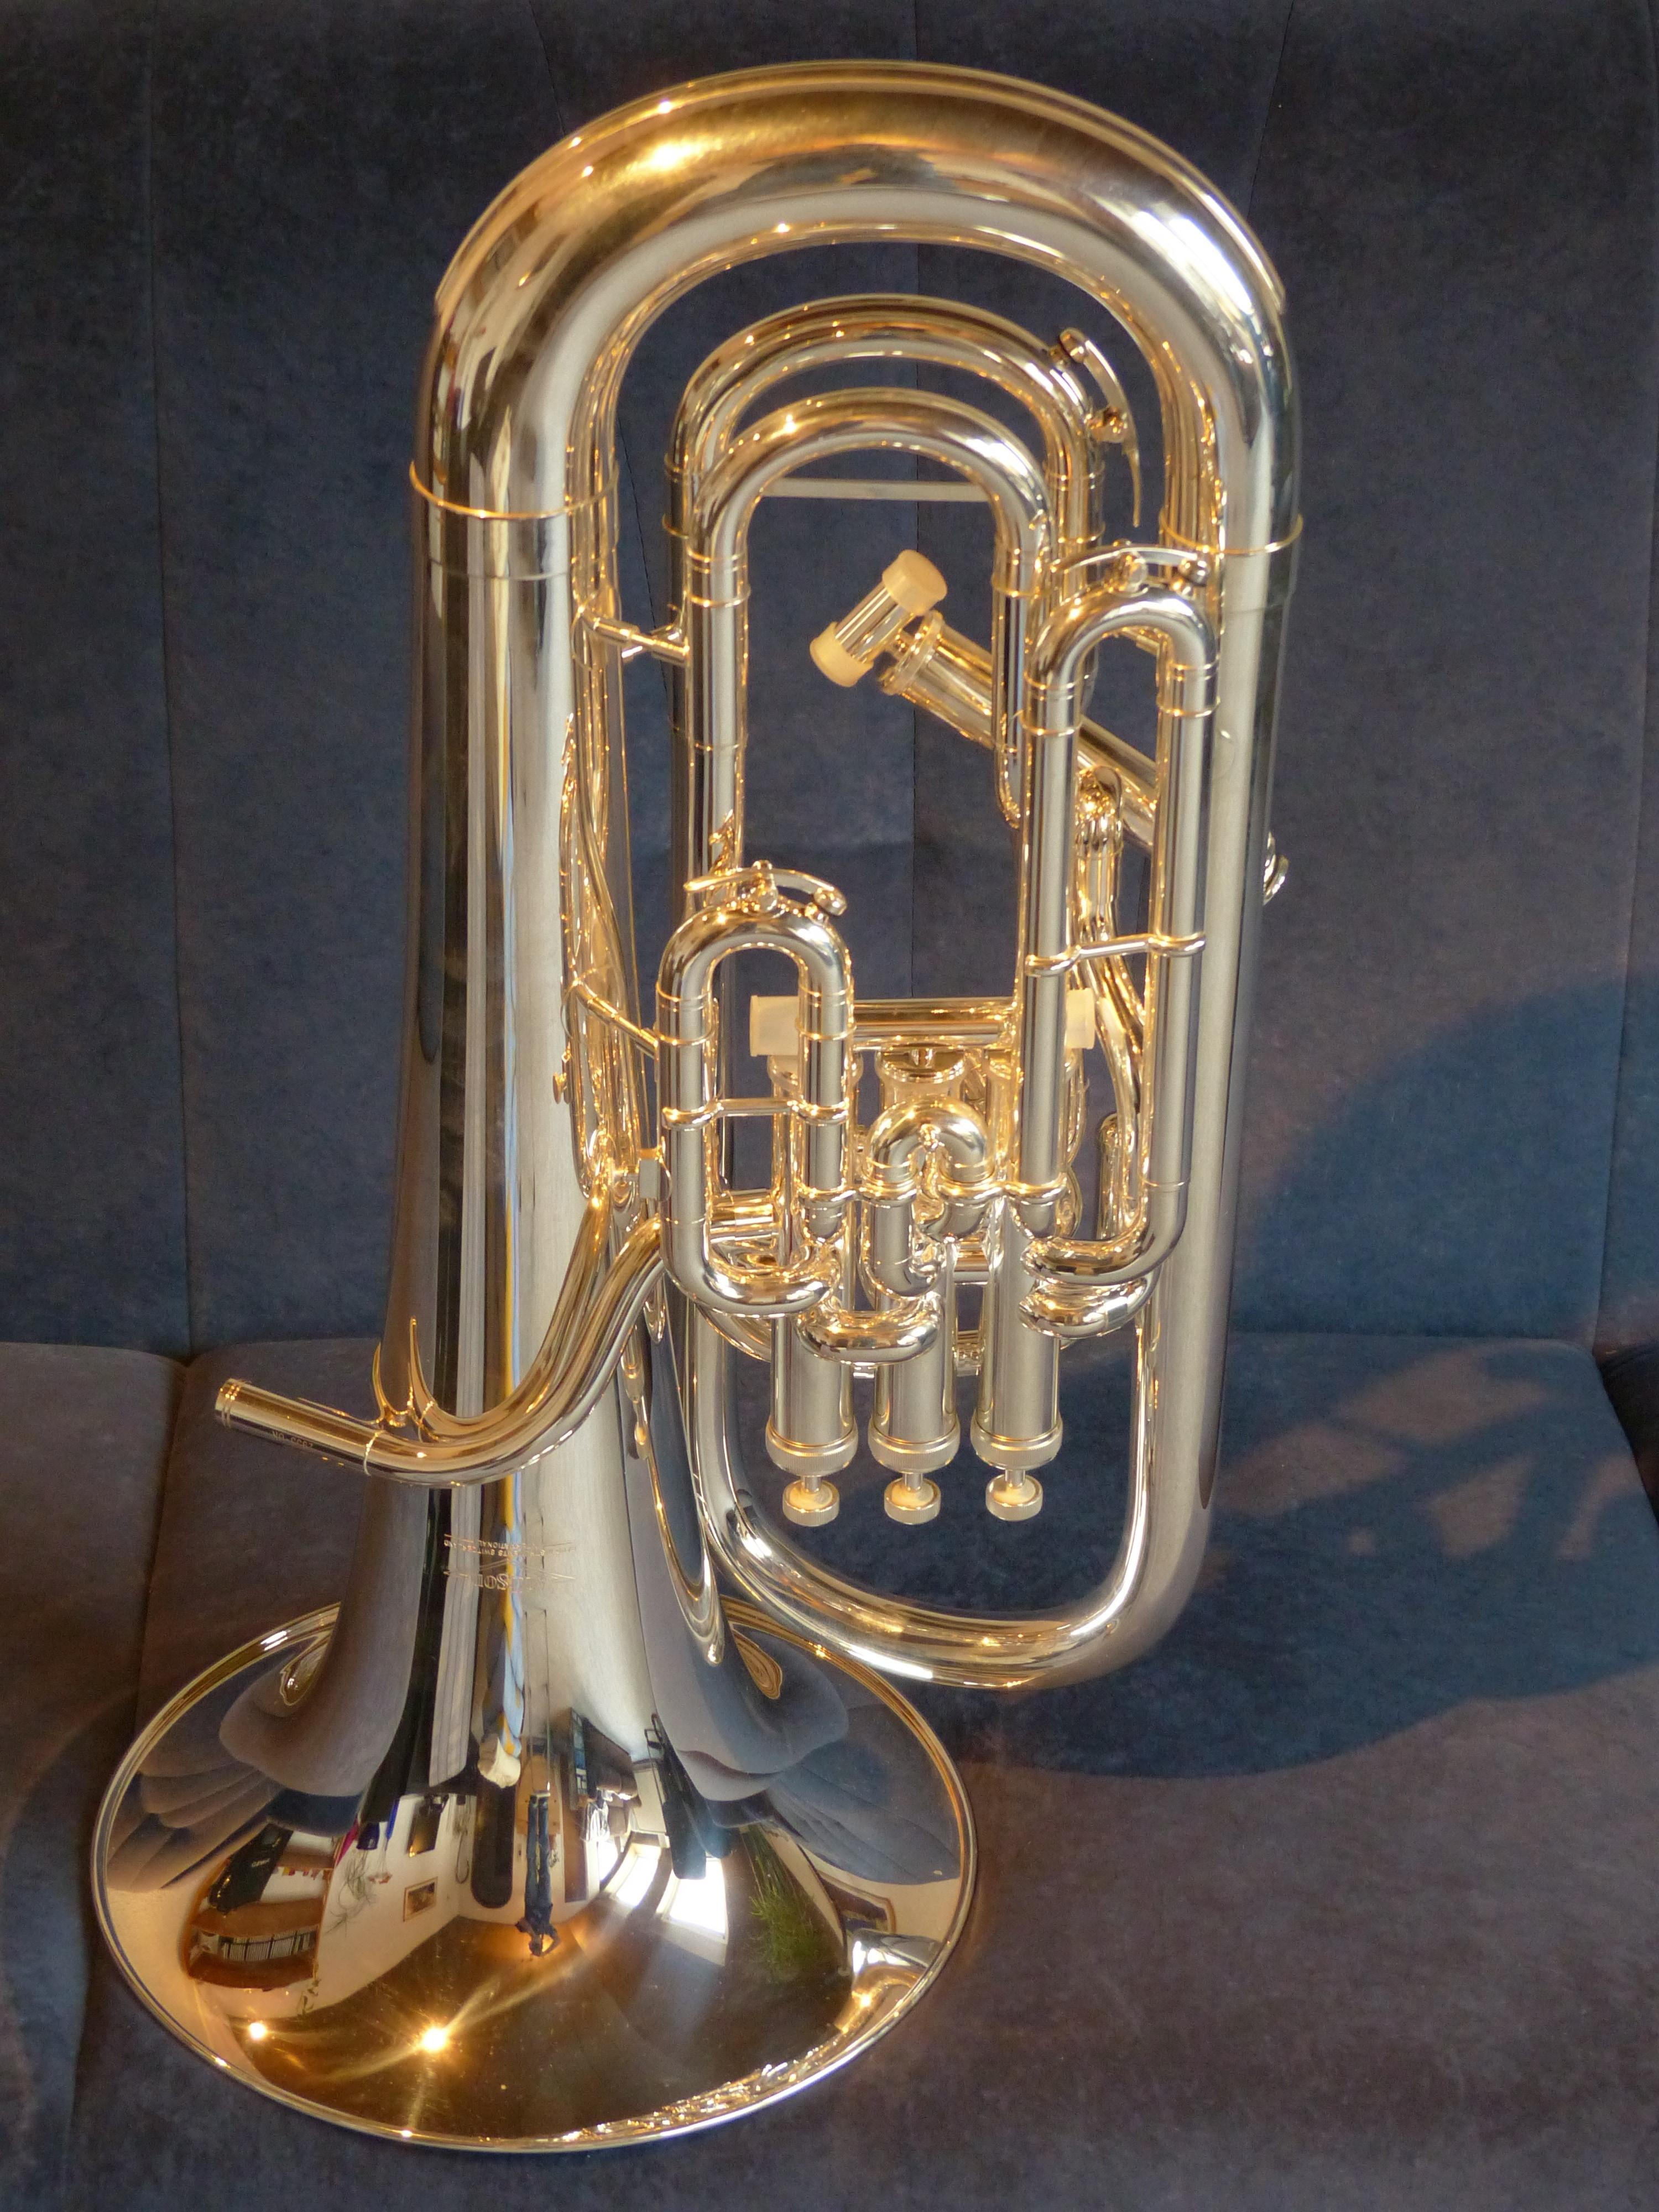 Brass Instrument, Euphonium, Instrument, music, gold colored free